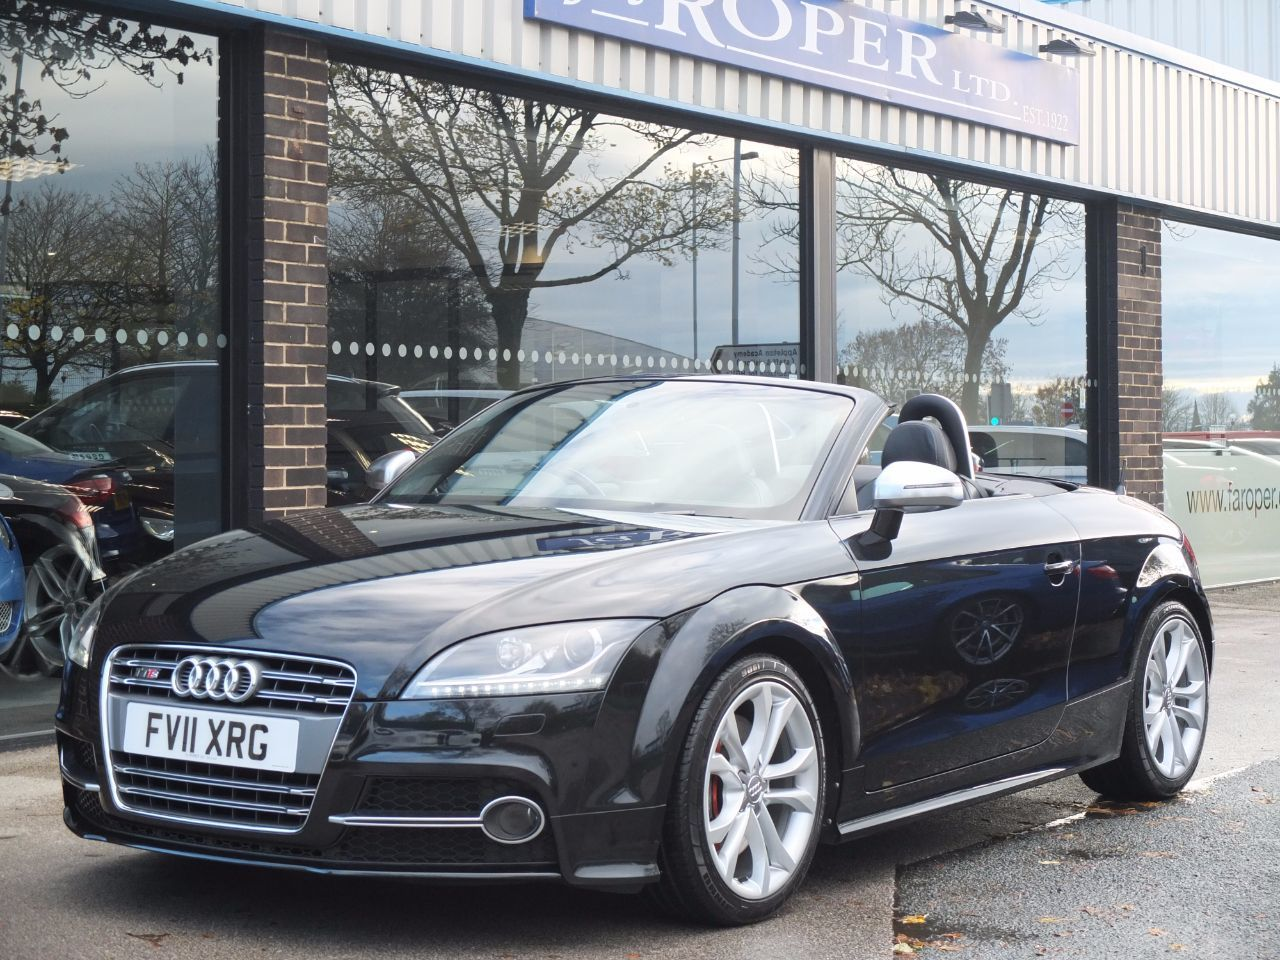 Audi TT TTS Roadster 2.0T FSI quattro S Tronic 272ps Convertible Petrol Phantom Black MetallicAudi TT TTS Roadster 2.0T FSI quattro S Tronic 272ps Convertible Petrol Phantom Black Metallic at fa Roper Ltd Bradford